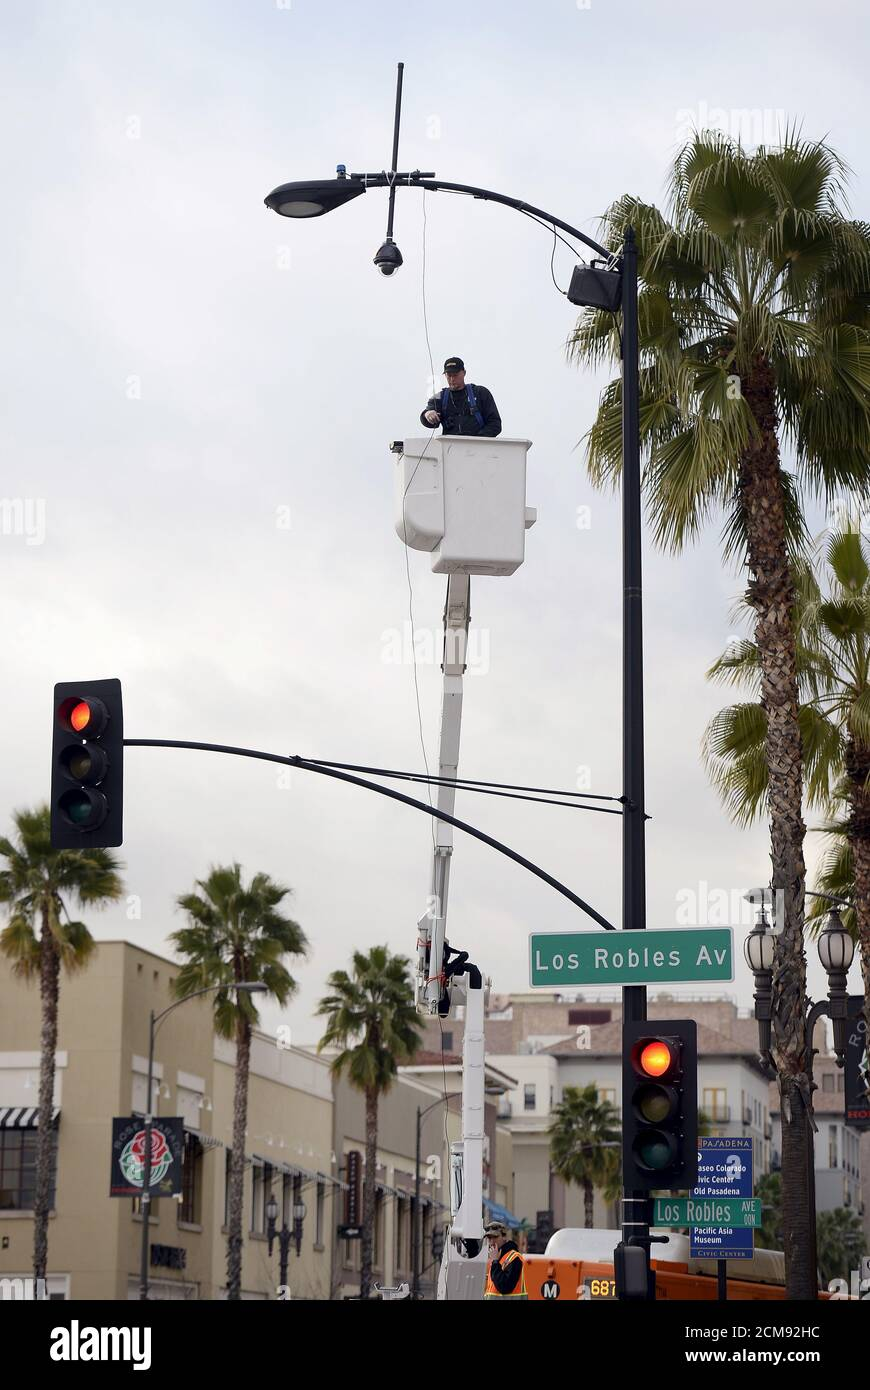 https www alamy com a worker puts up a surveillance camera on a street light pole along the route of the parade on colorado boulevard in preparation for the rose parade in pasadena california december 28 2015 reuterskevork djansezian image373910472 html